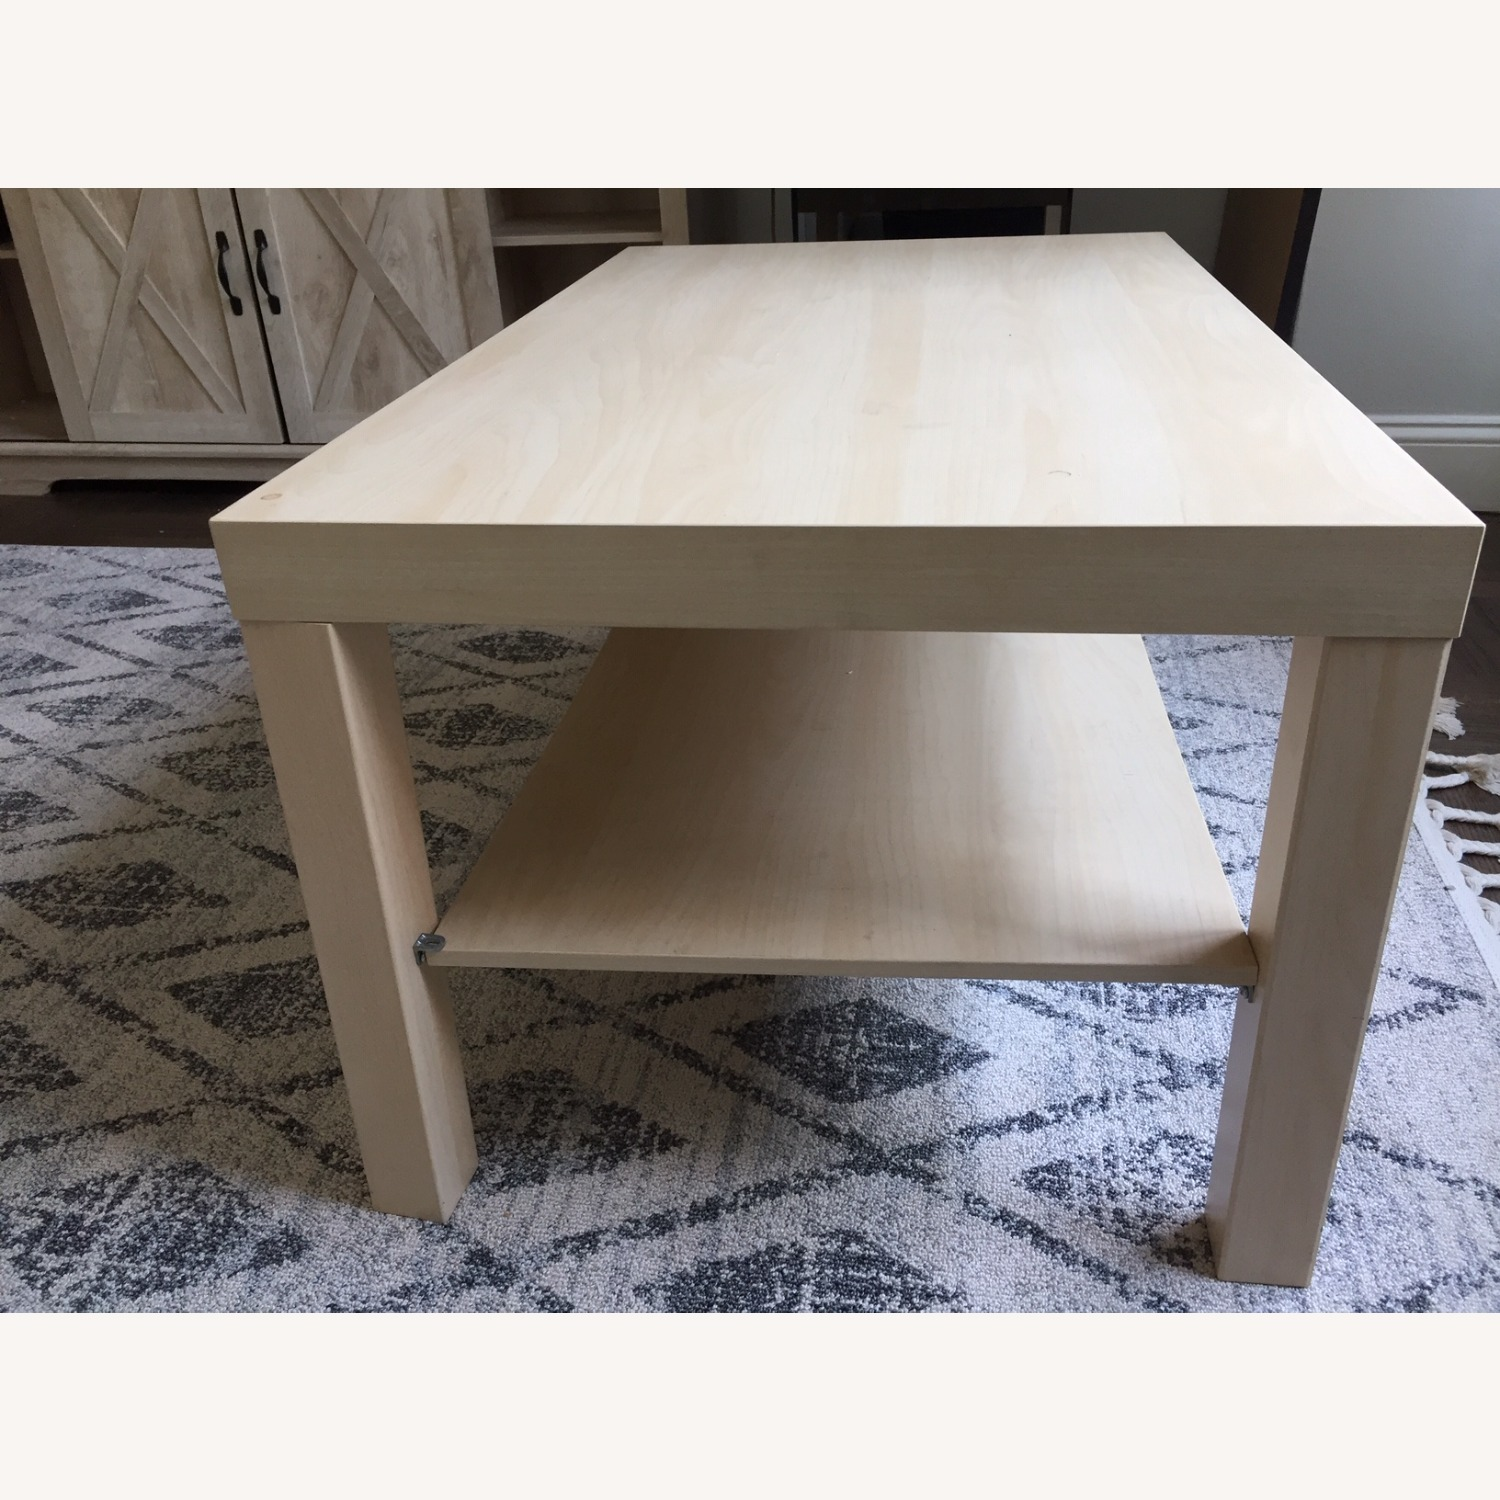 IKEA White Stained Oak Effect Lack Coffee Table - image-2